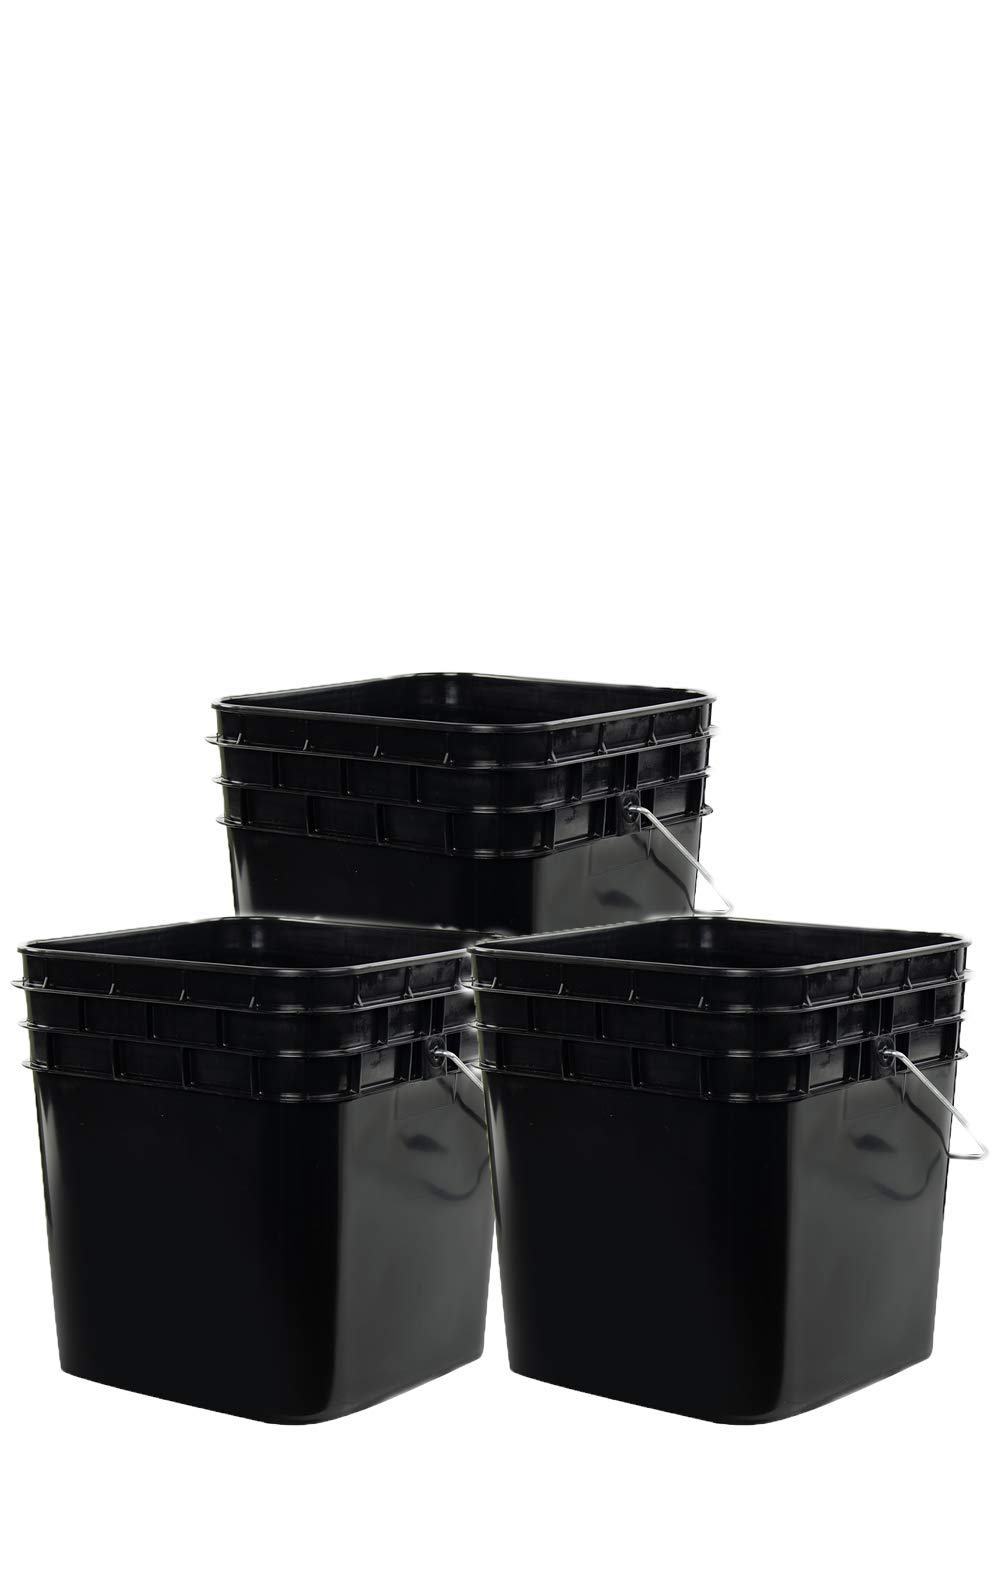 3.3 Gallon Square Plastic Black Bucket with Black Plastic Lid | 3 Pack